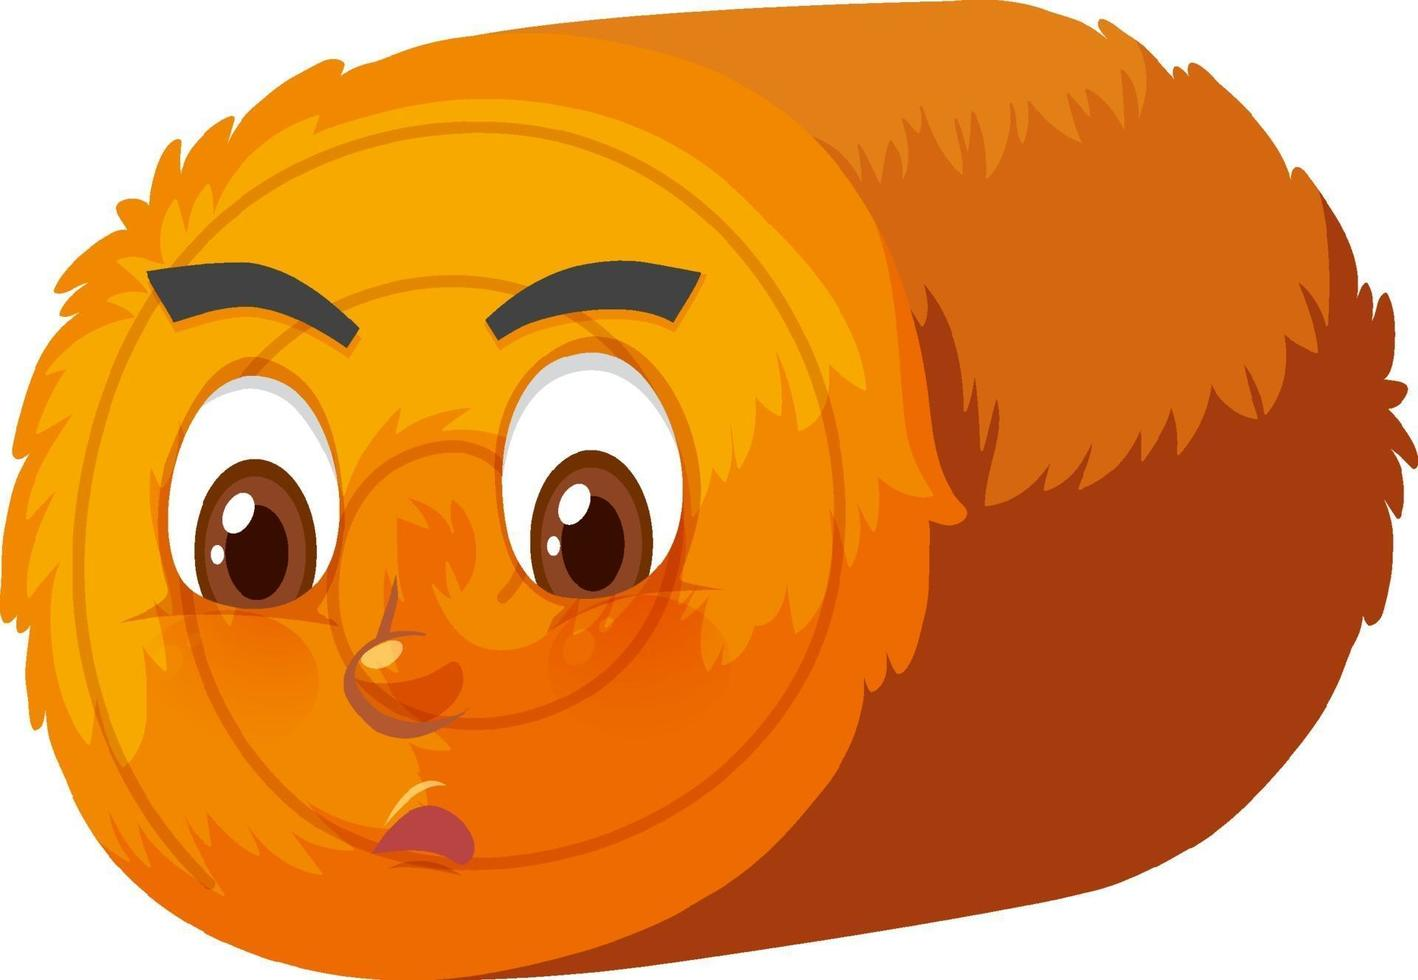 Round hay bale cartoon character with facial expression vector